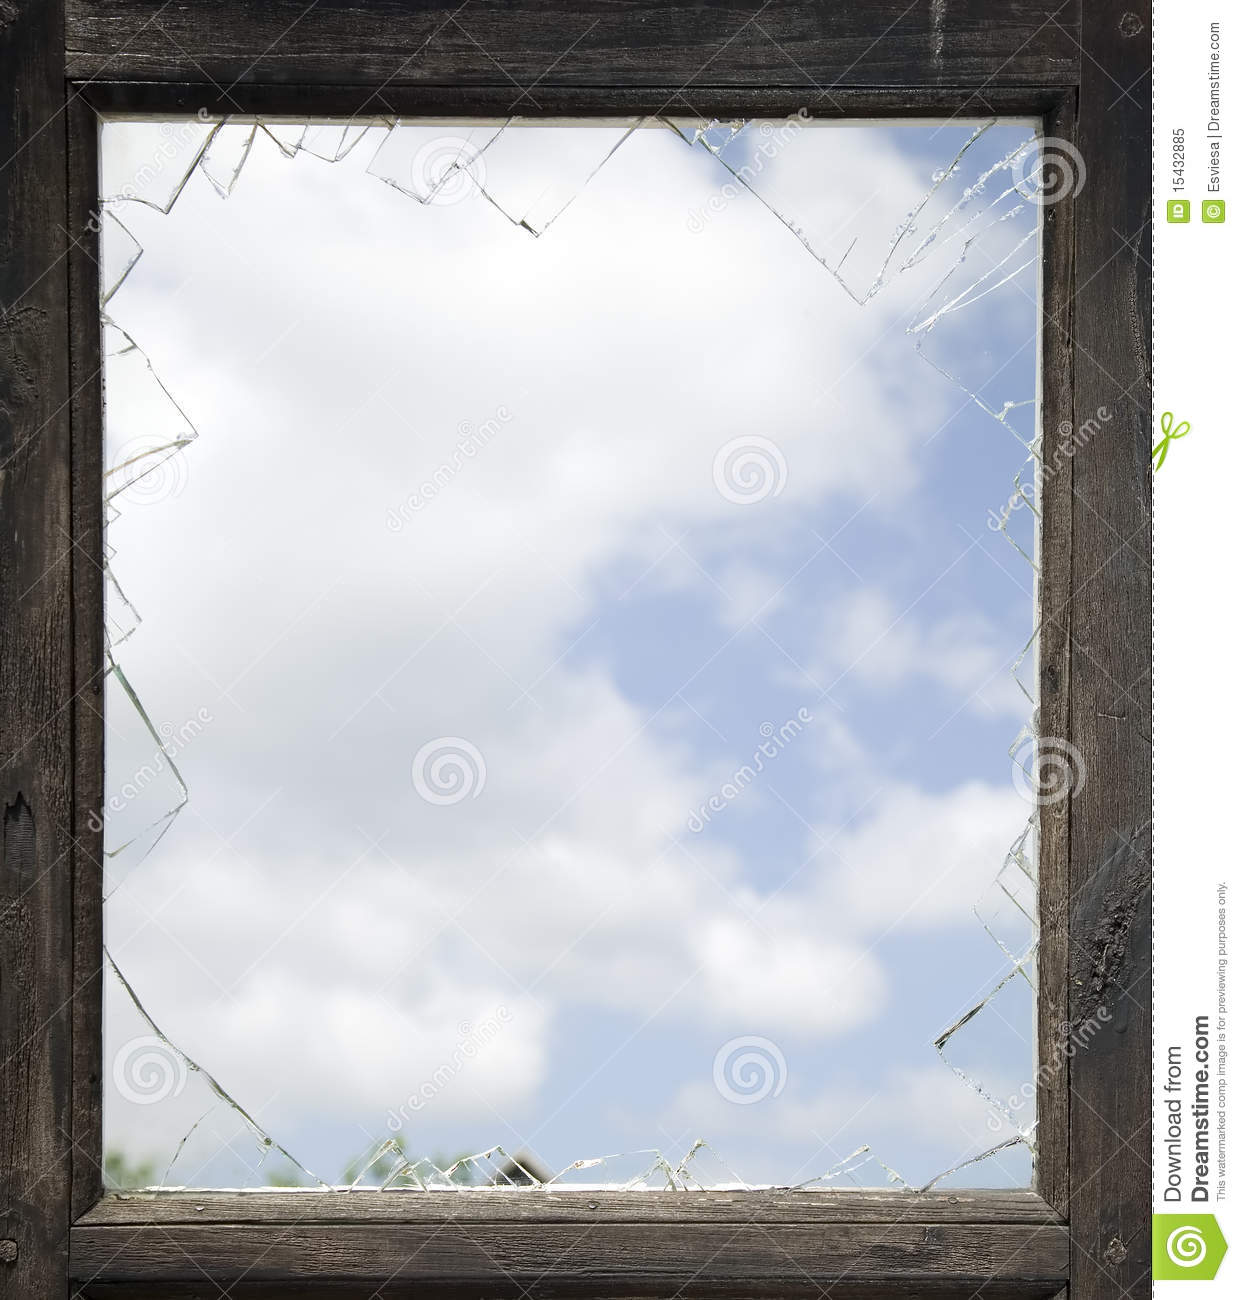 Broken Window With Old Wooden Frame Stock Image - Image of wood ...